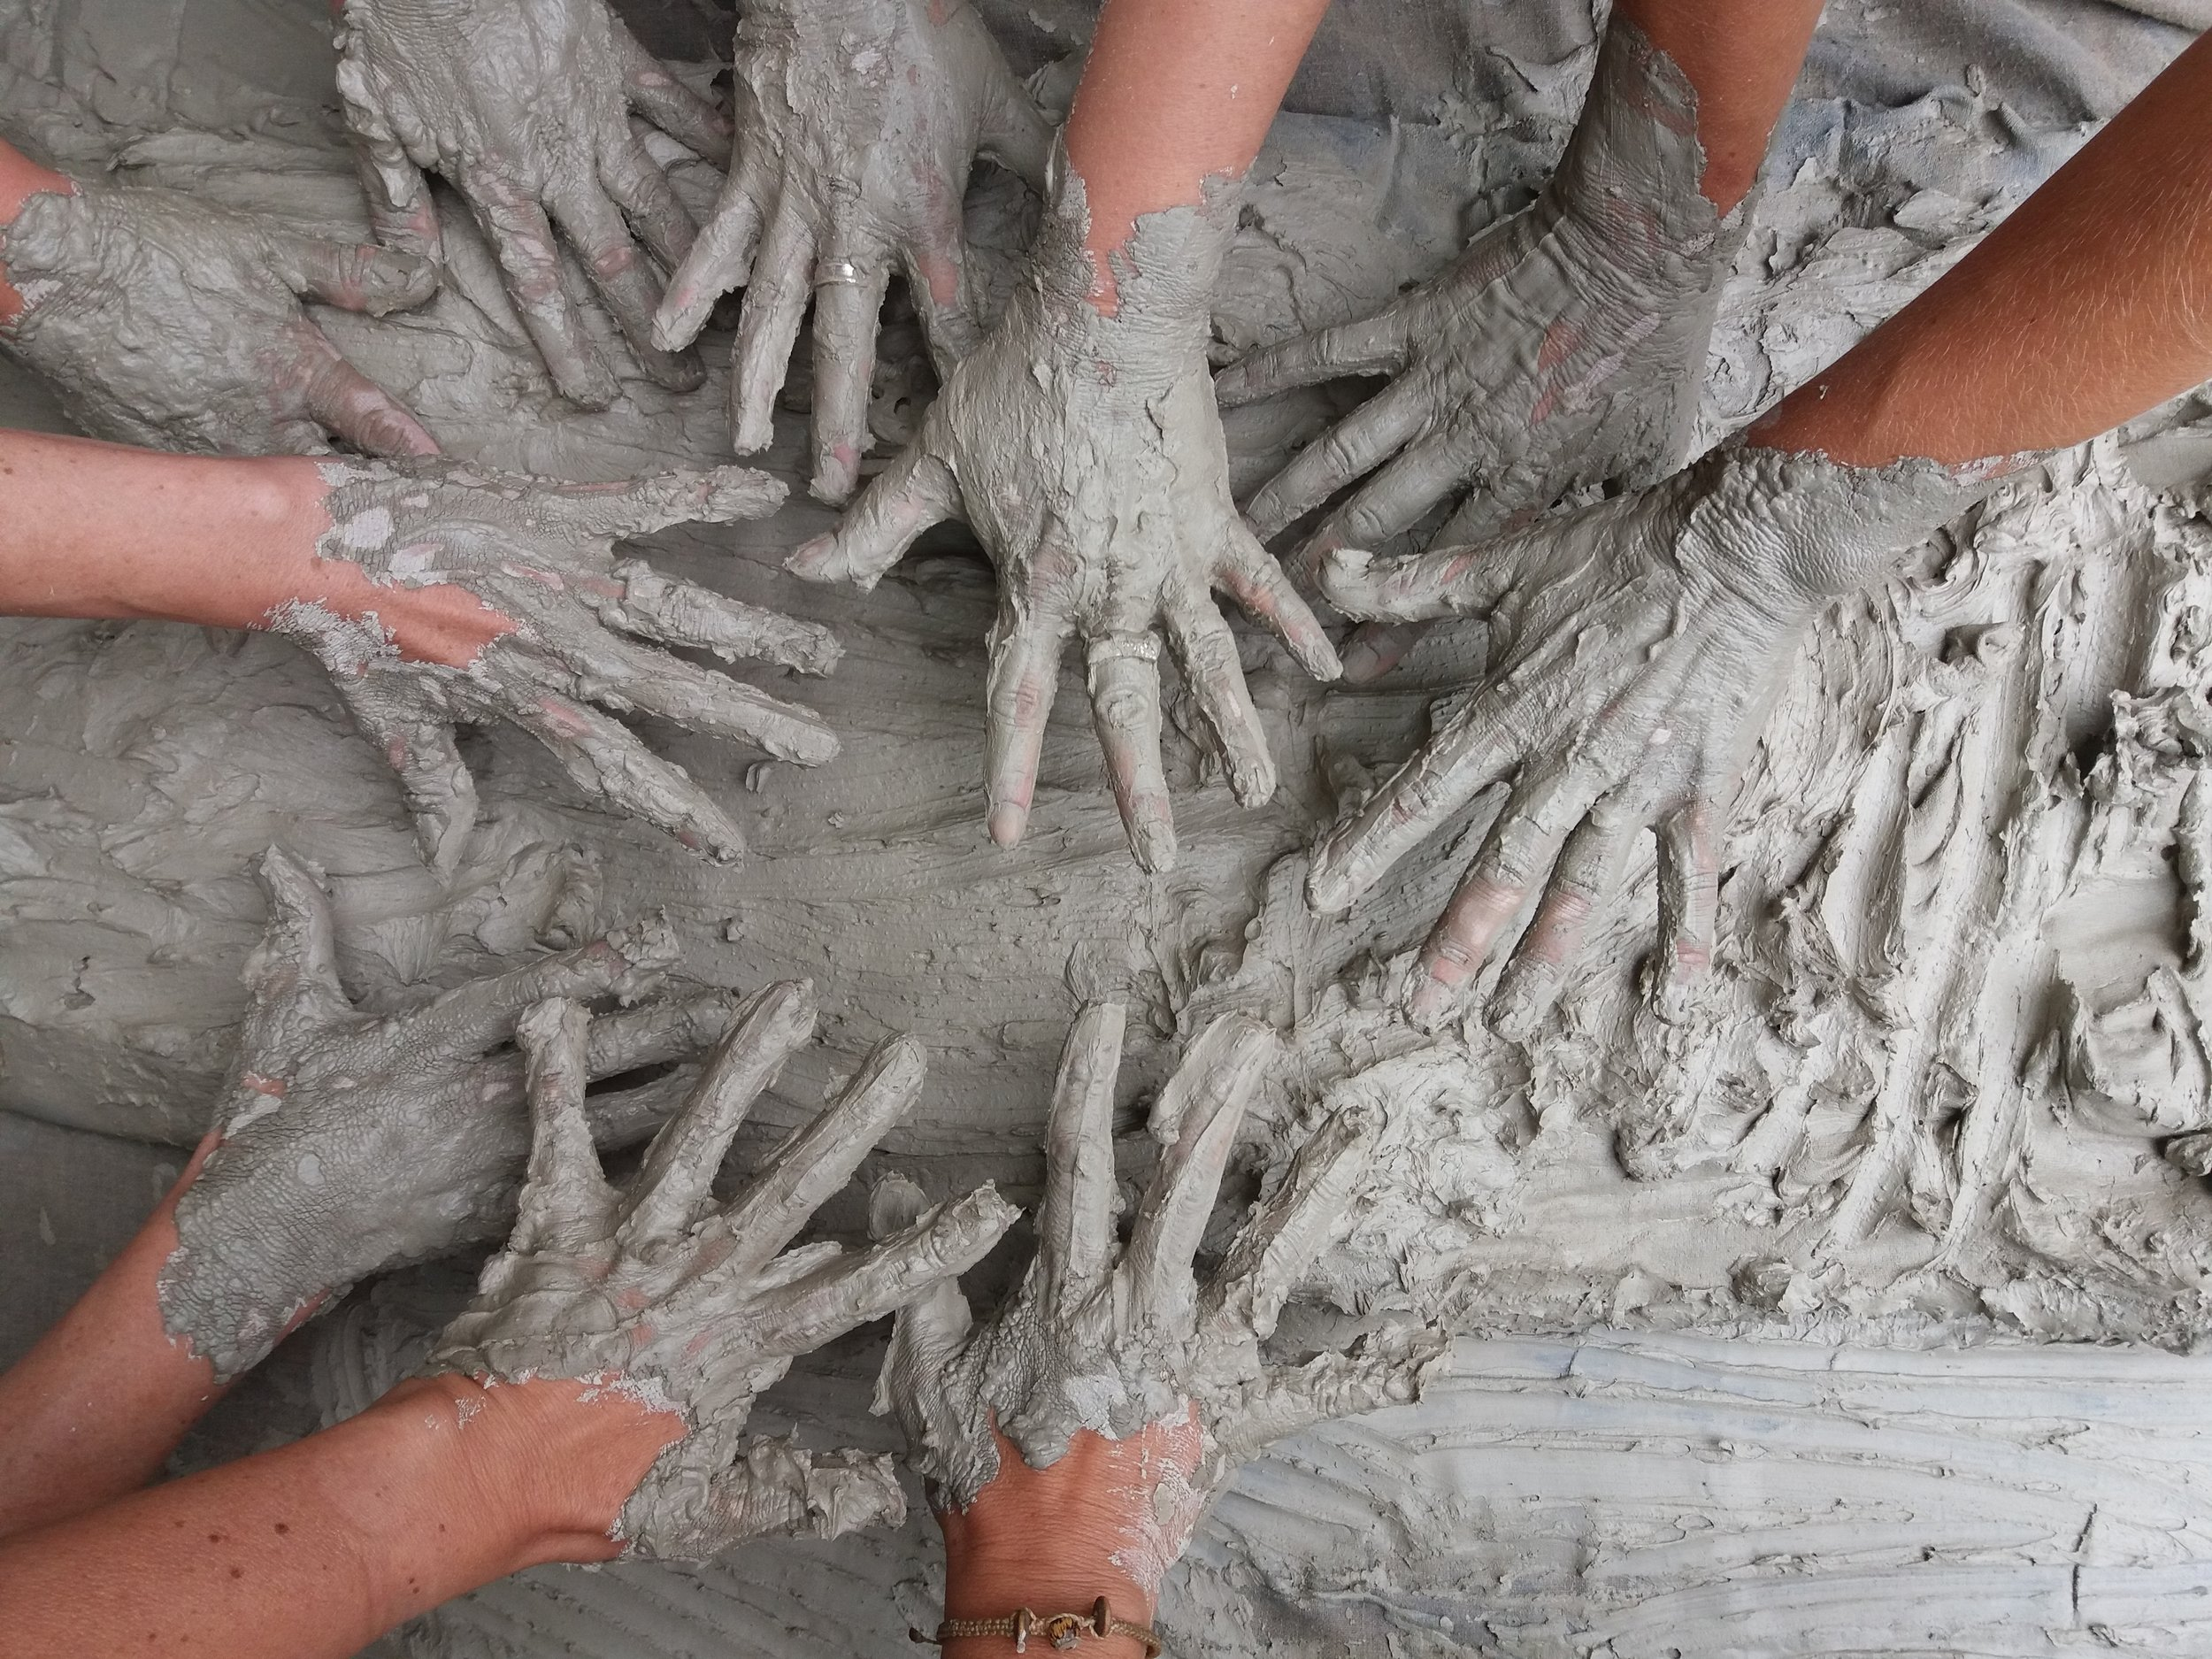 hands in clay.jpg